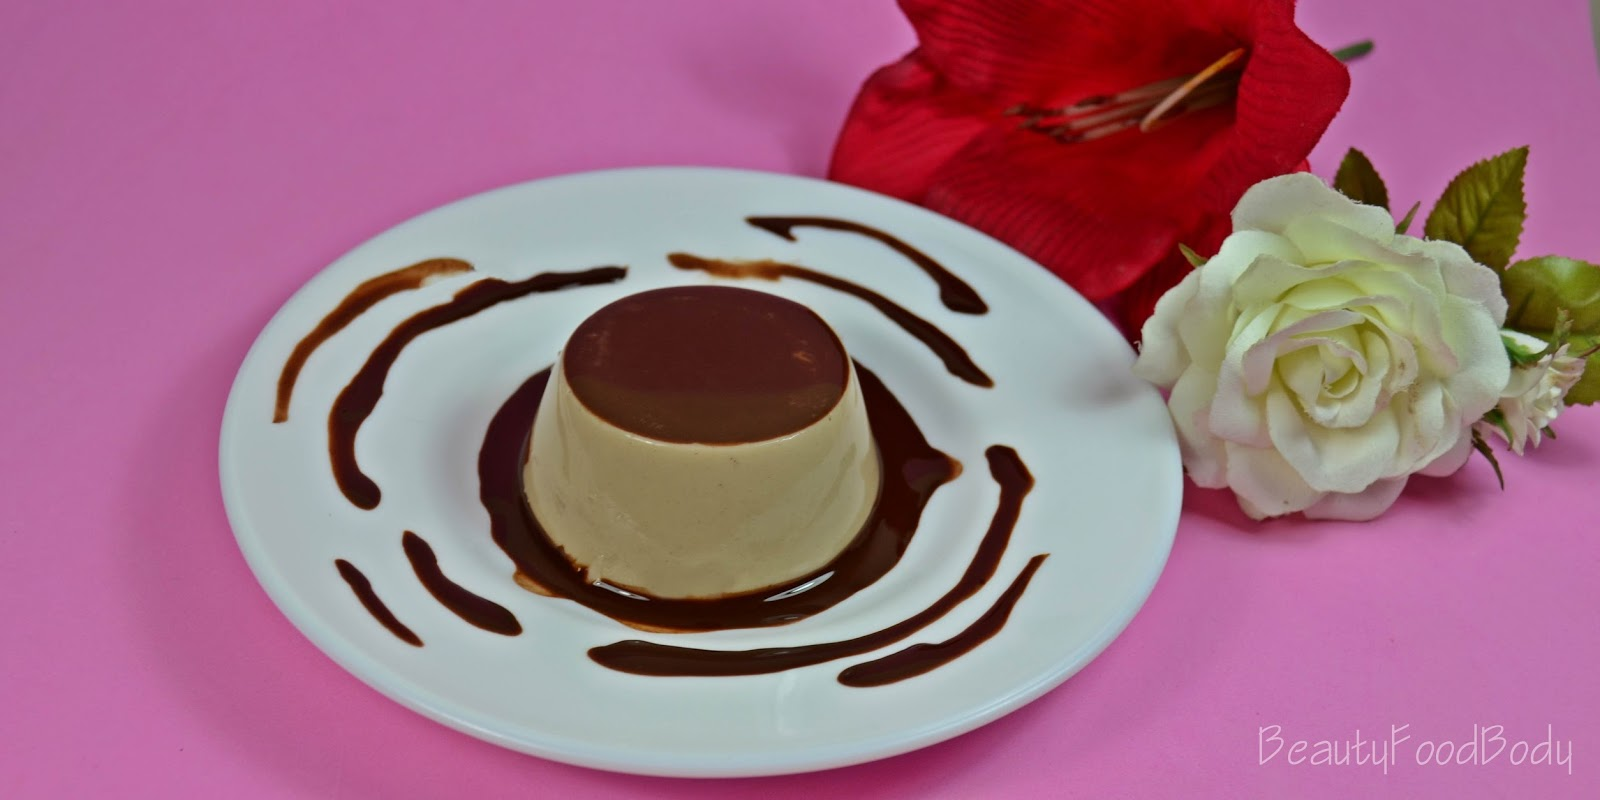 Beauty food body rubibeauty receta fitness flan proteico chocolate